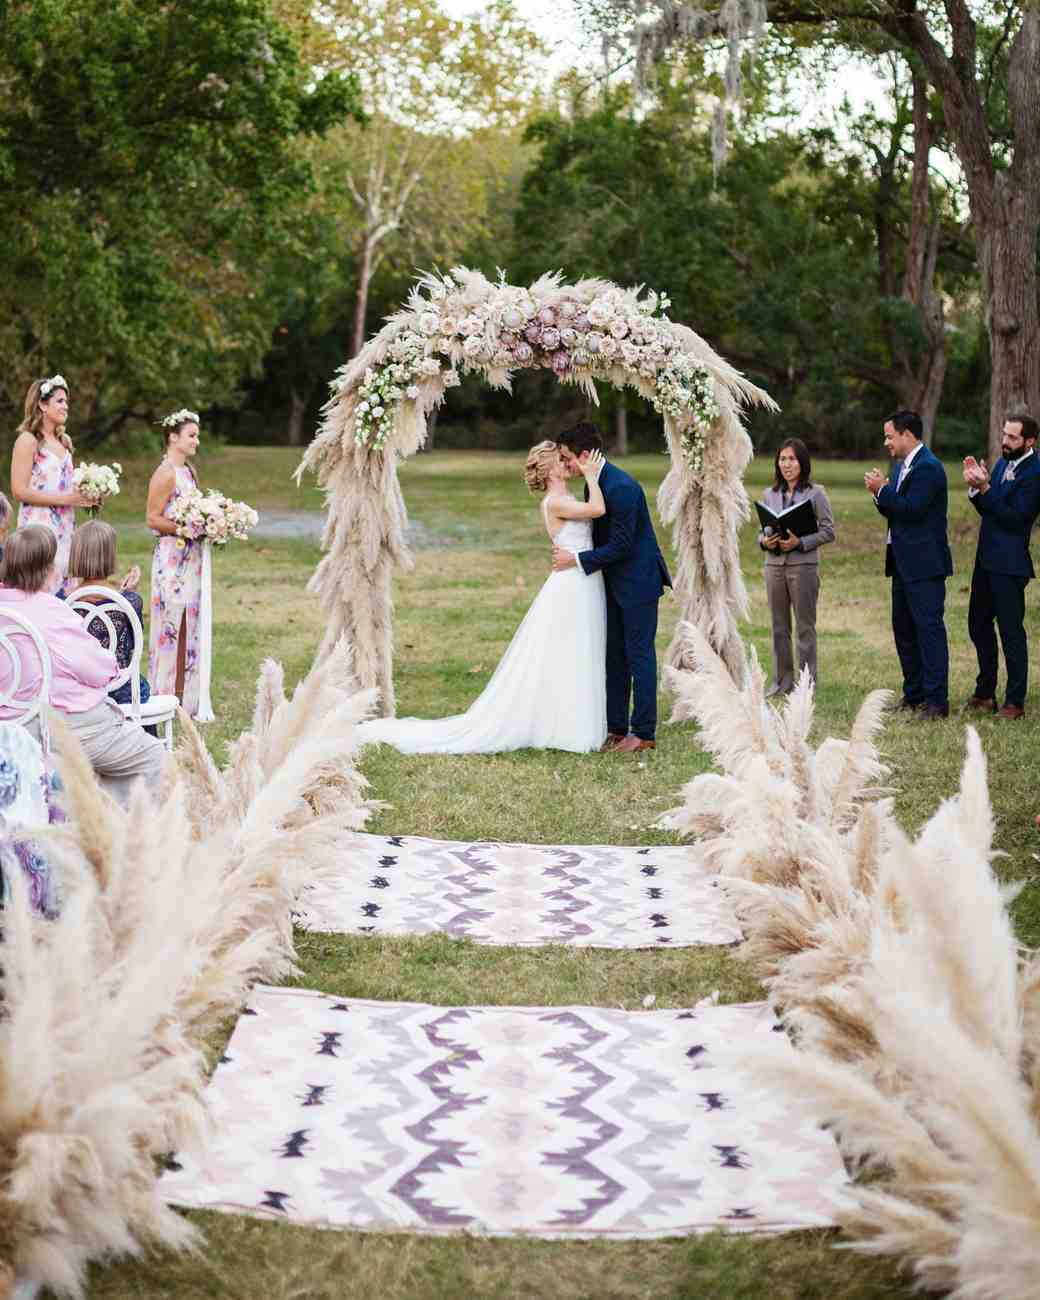 The Ceremony Decor: A Luxe Bohemian Wedding In Texas